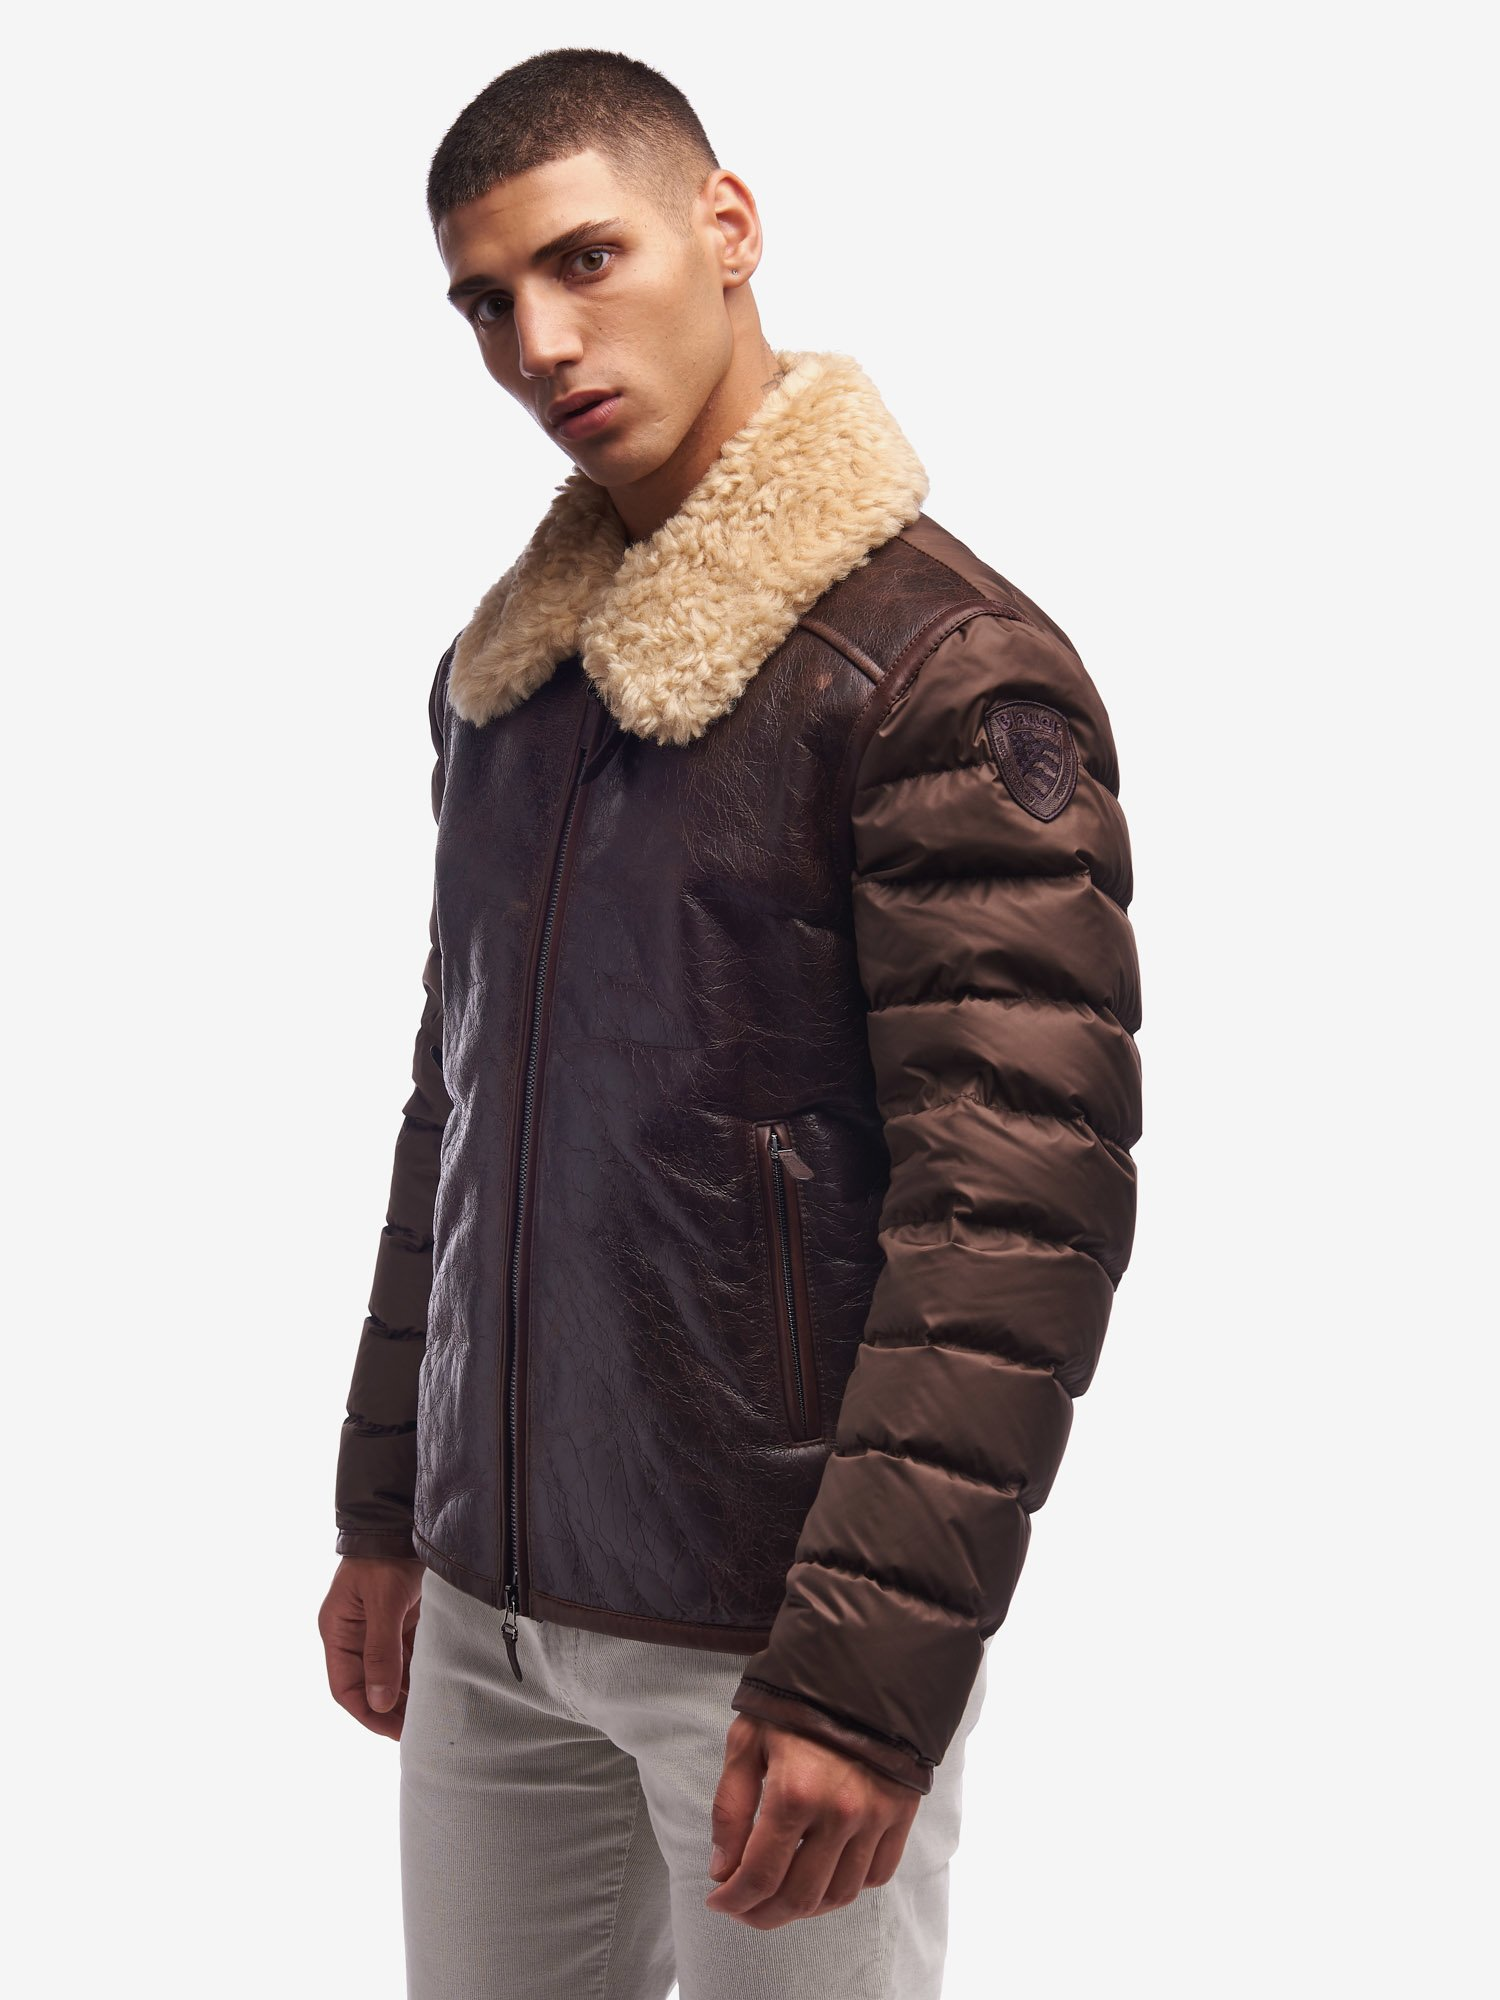 CLARKE VINTAGE SHEARLING LEATHER AND NYLON JACKET - Blauer